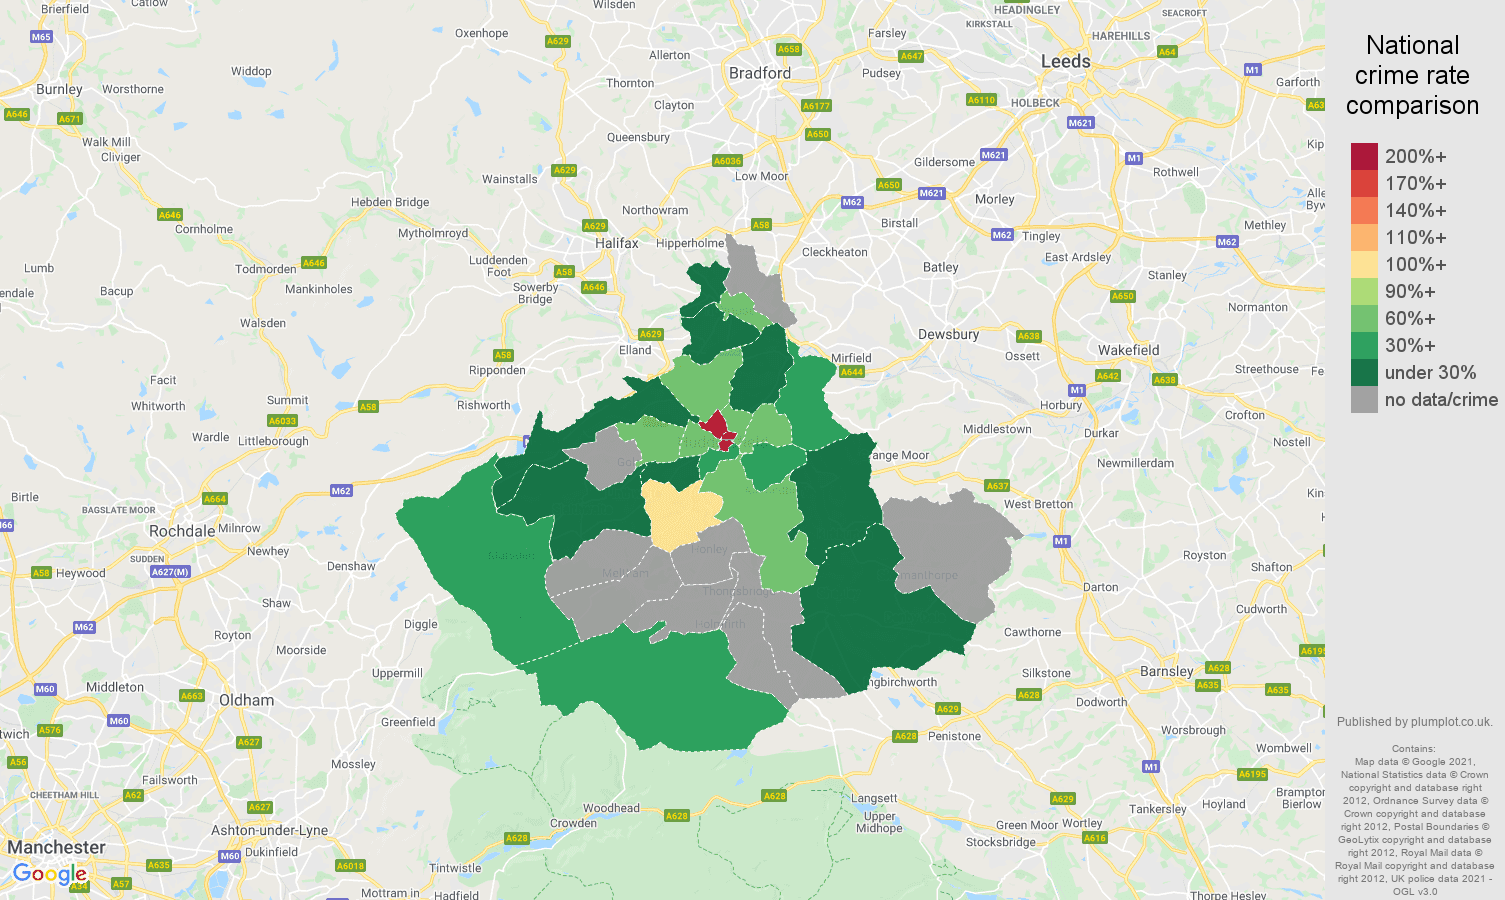 Huddersfield theft from the person crime rate comparison map